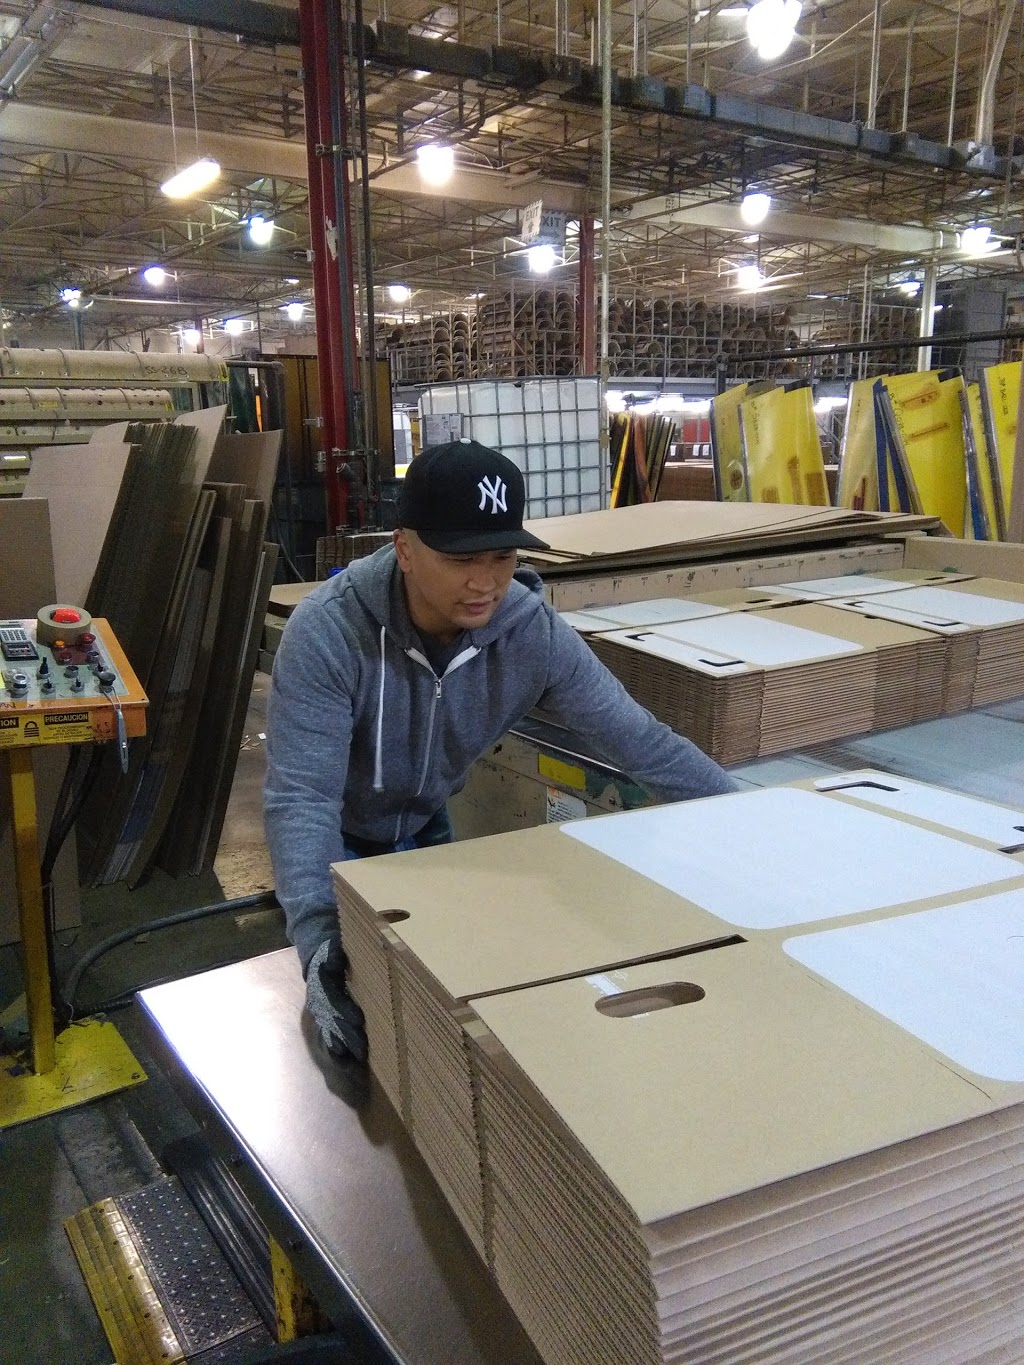 Crown Packaging | store | 13911 Garden City Rd, Richmond, BC V7A 2S5, Canada | 6042777111 OR +1 604-277-7111